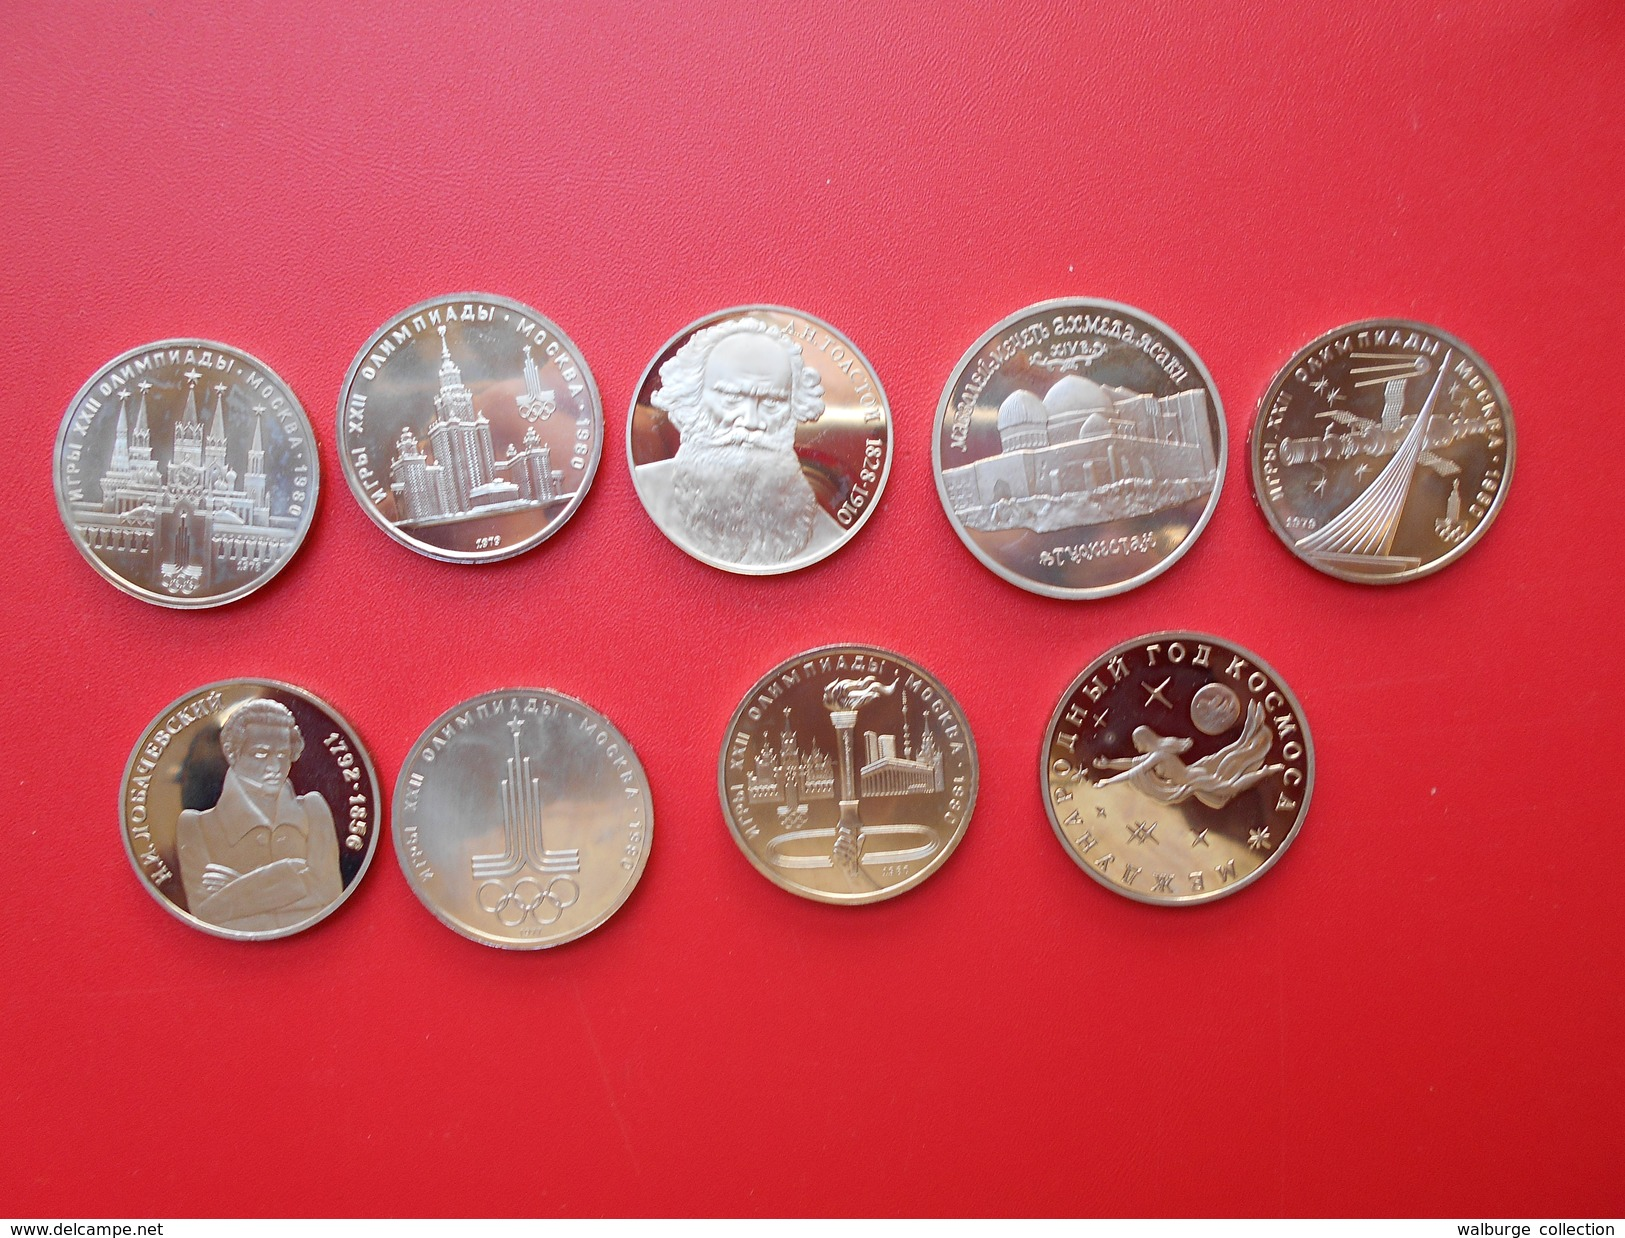 """RUSSIE MODERNE BEL ASSORTIMENT 9 MONNAIES(1-3-5 ROUBLES) QUALITE """"PROOF"""" - Coins & Banknotes"""